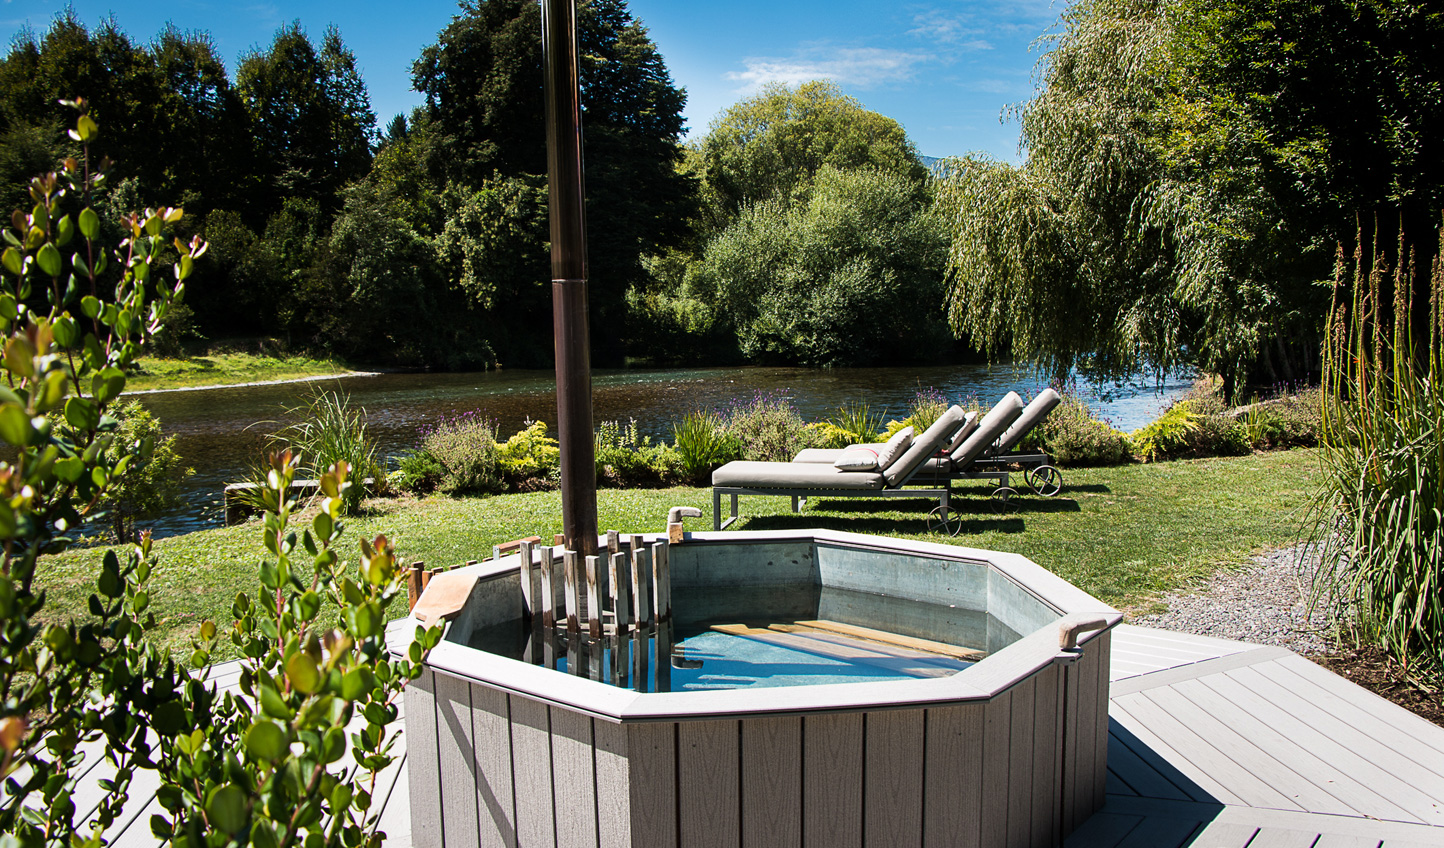 Relax in the hot tub overlooking the river